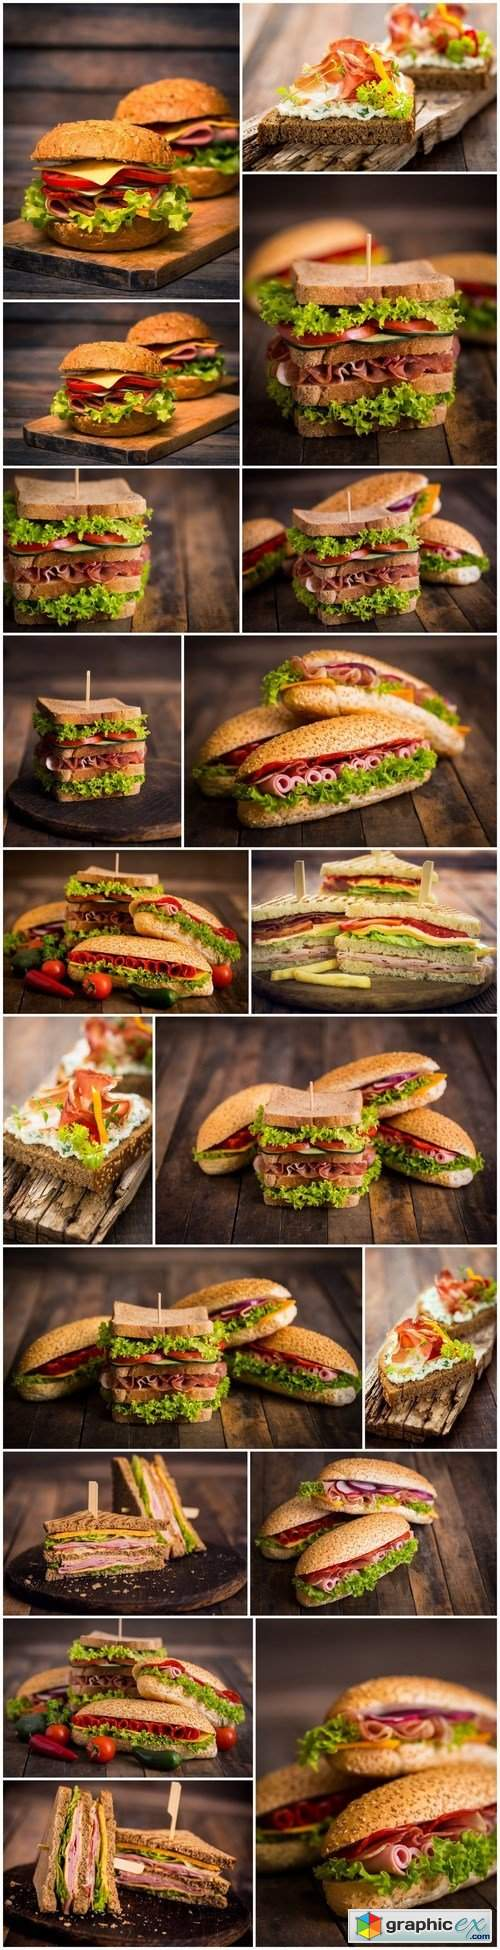 Tasty Sandwiches 10 - Set of 22xUHQ JPEG Professional Stock Images